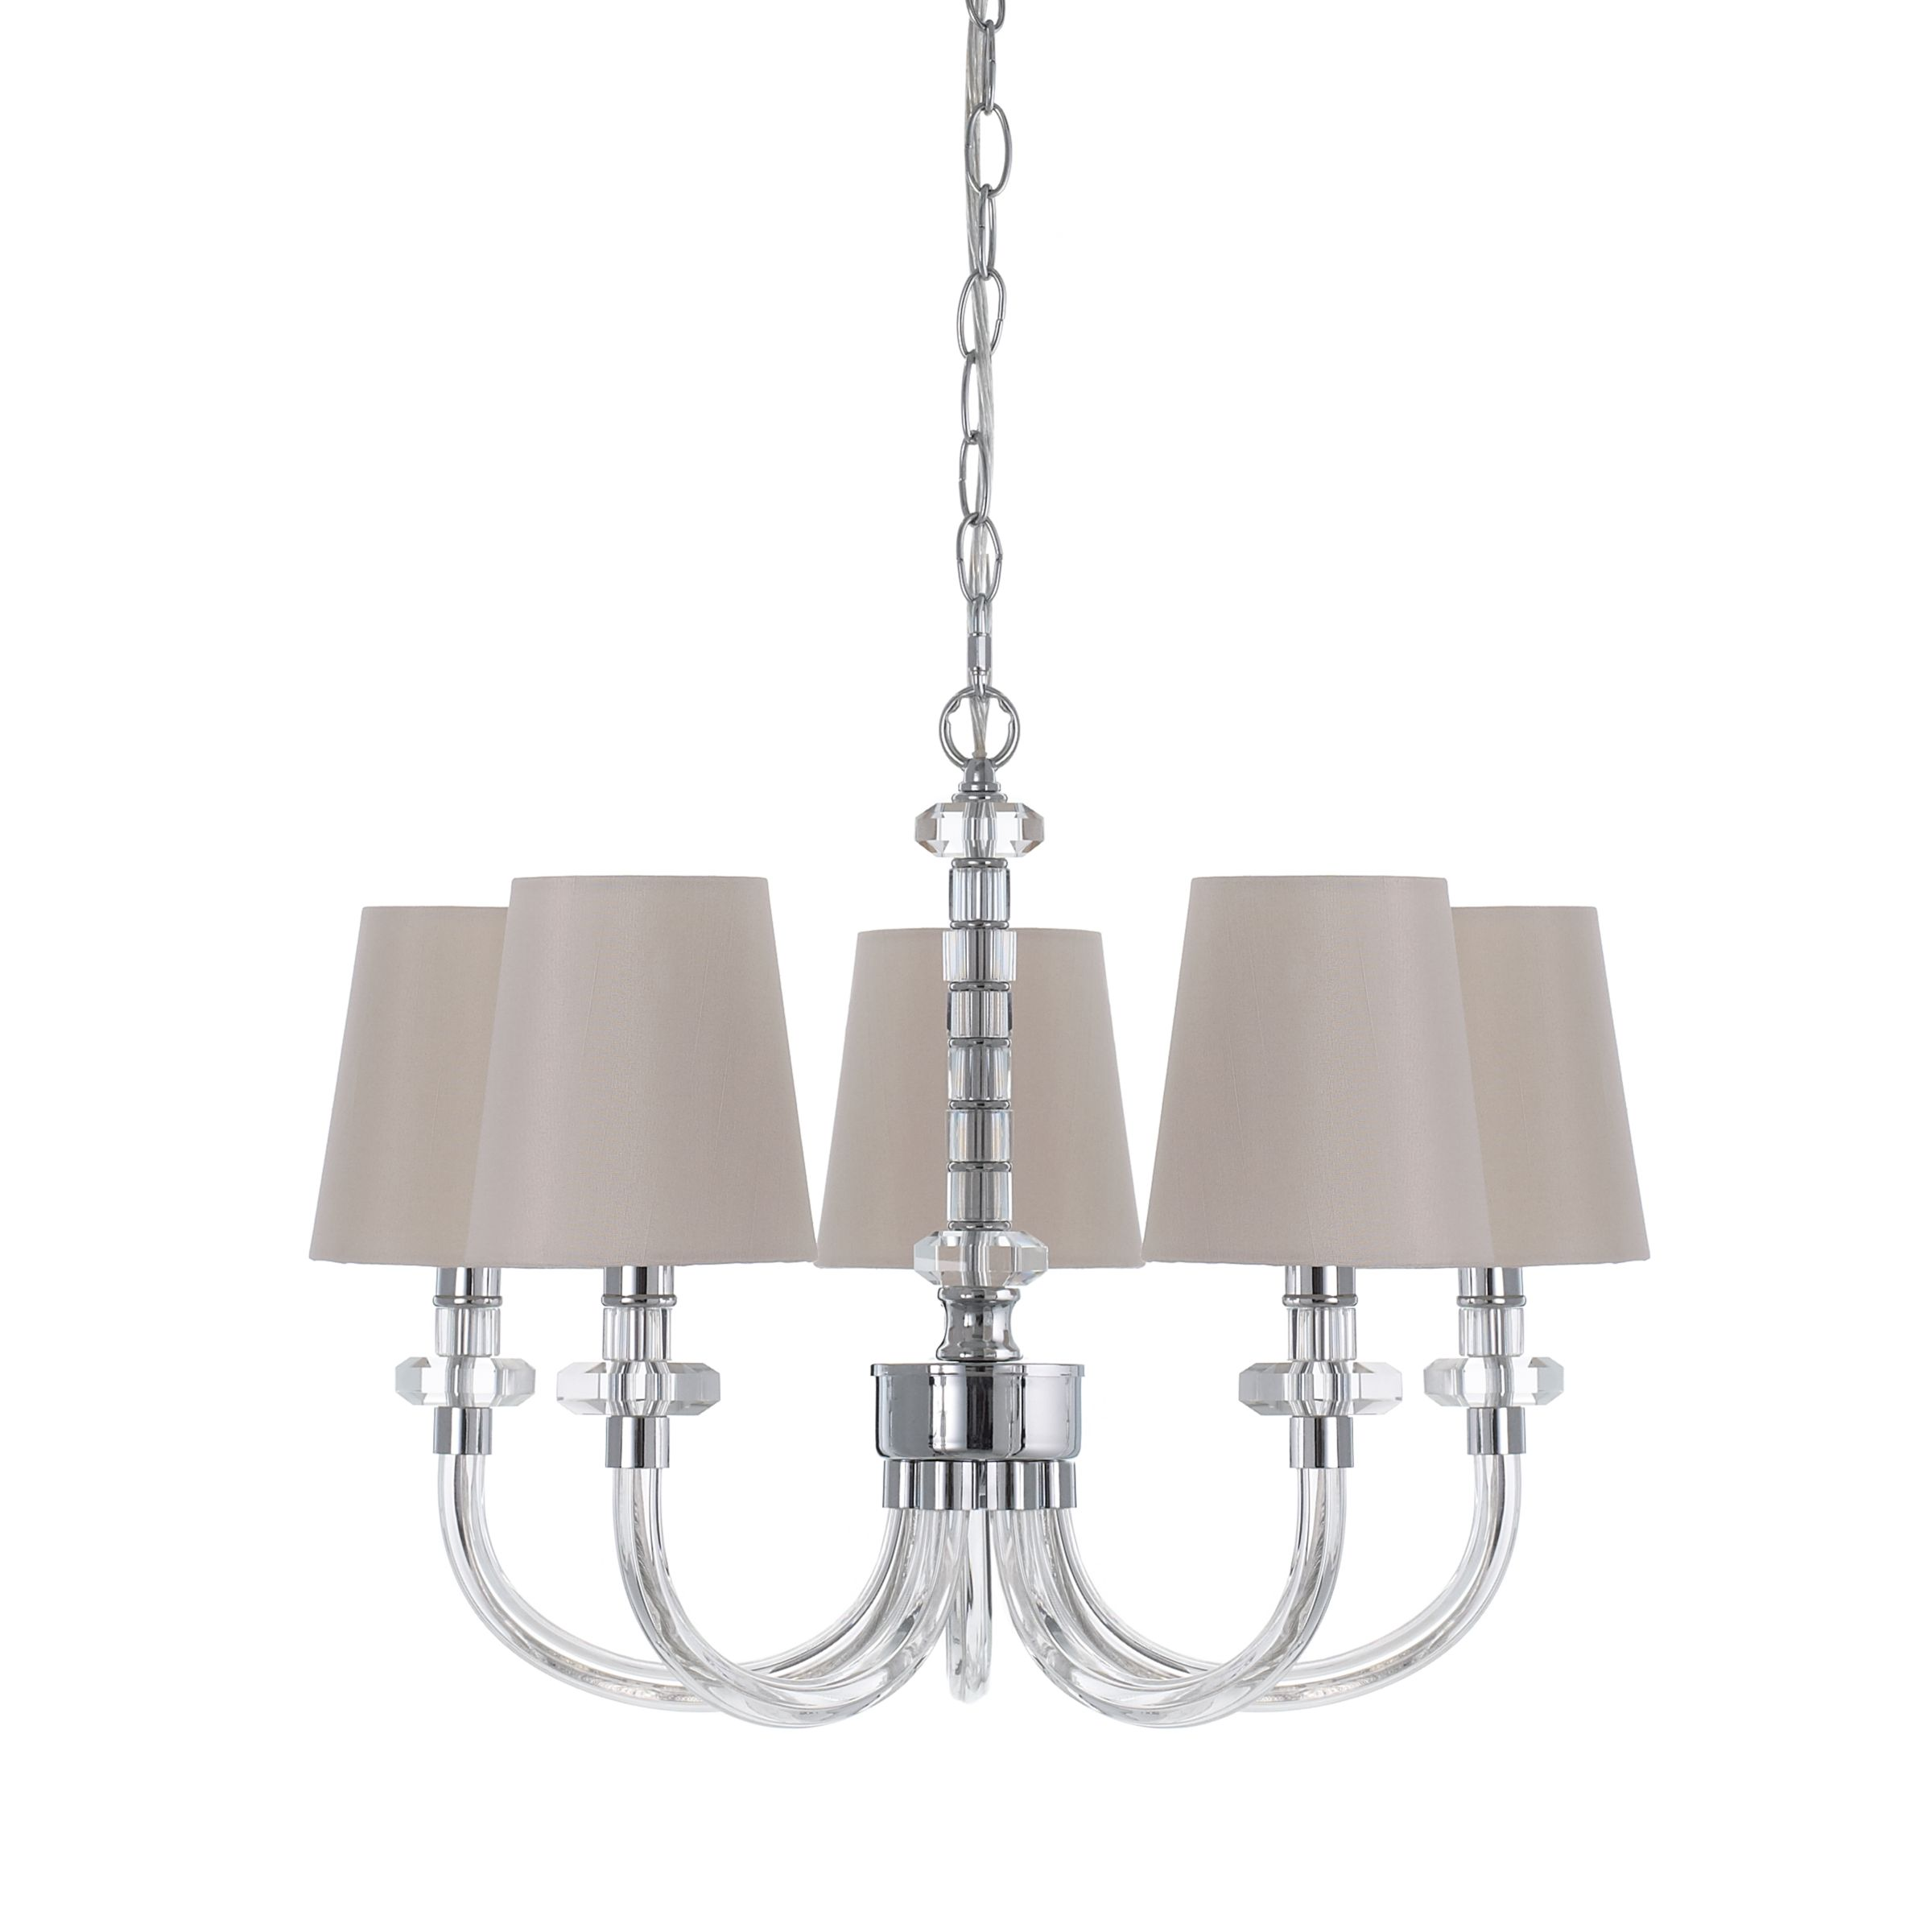 John Lewis Darcey Ceiling Light 5 Arm